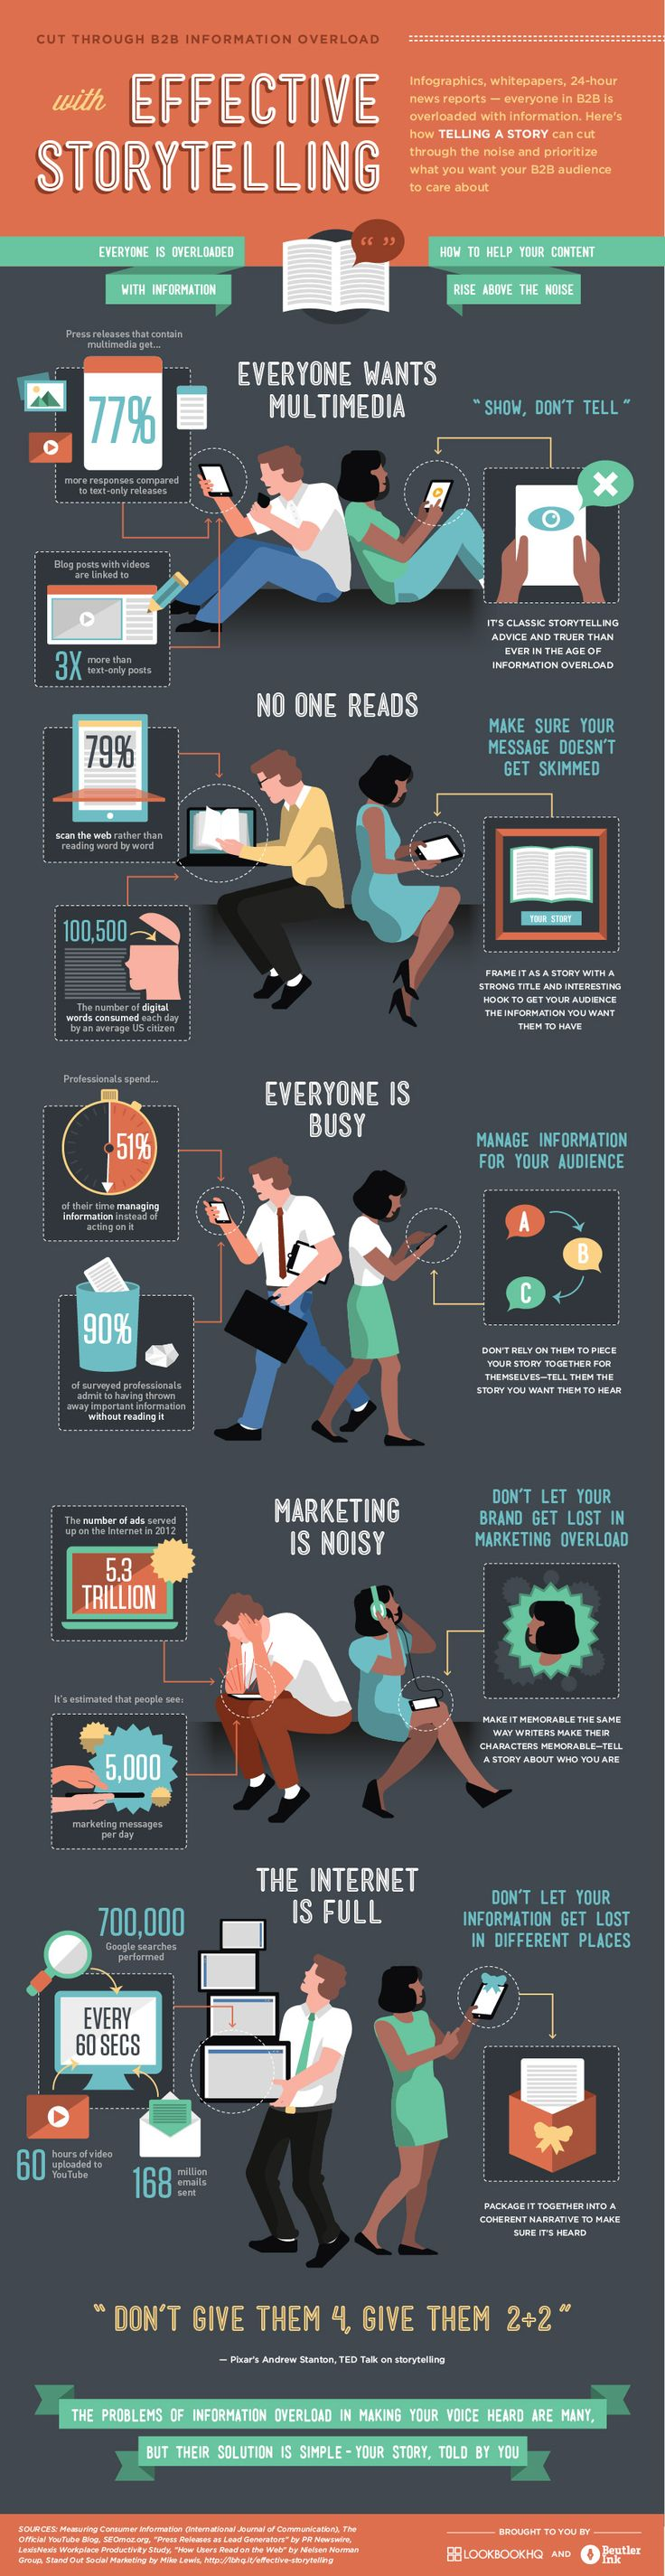 *story telling techniques   The Secret to Marketing to Busy People Who Don't Have Time to Read (Infographic)